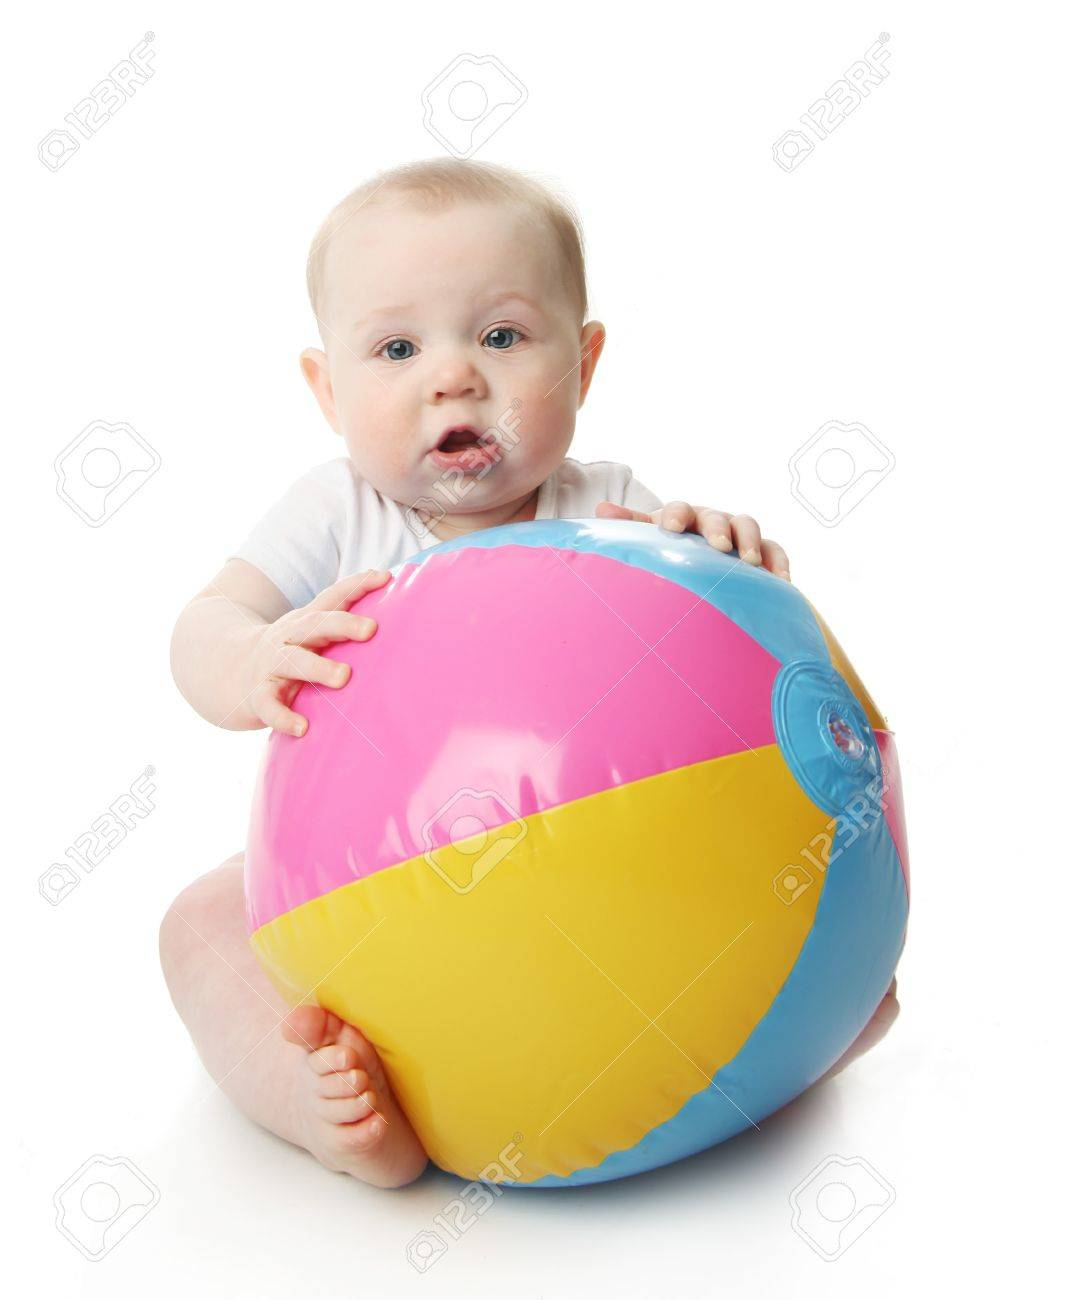 Adorable baby playing with a colorful beach ball, isolated on white - 9939533